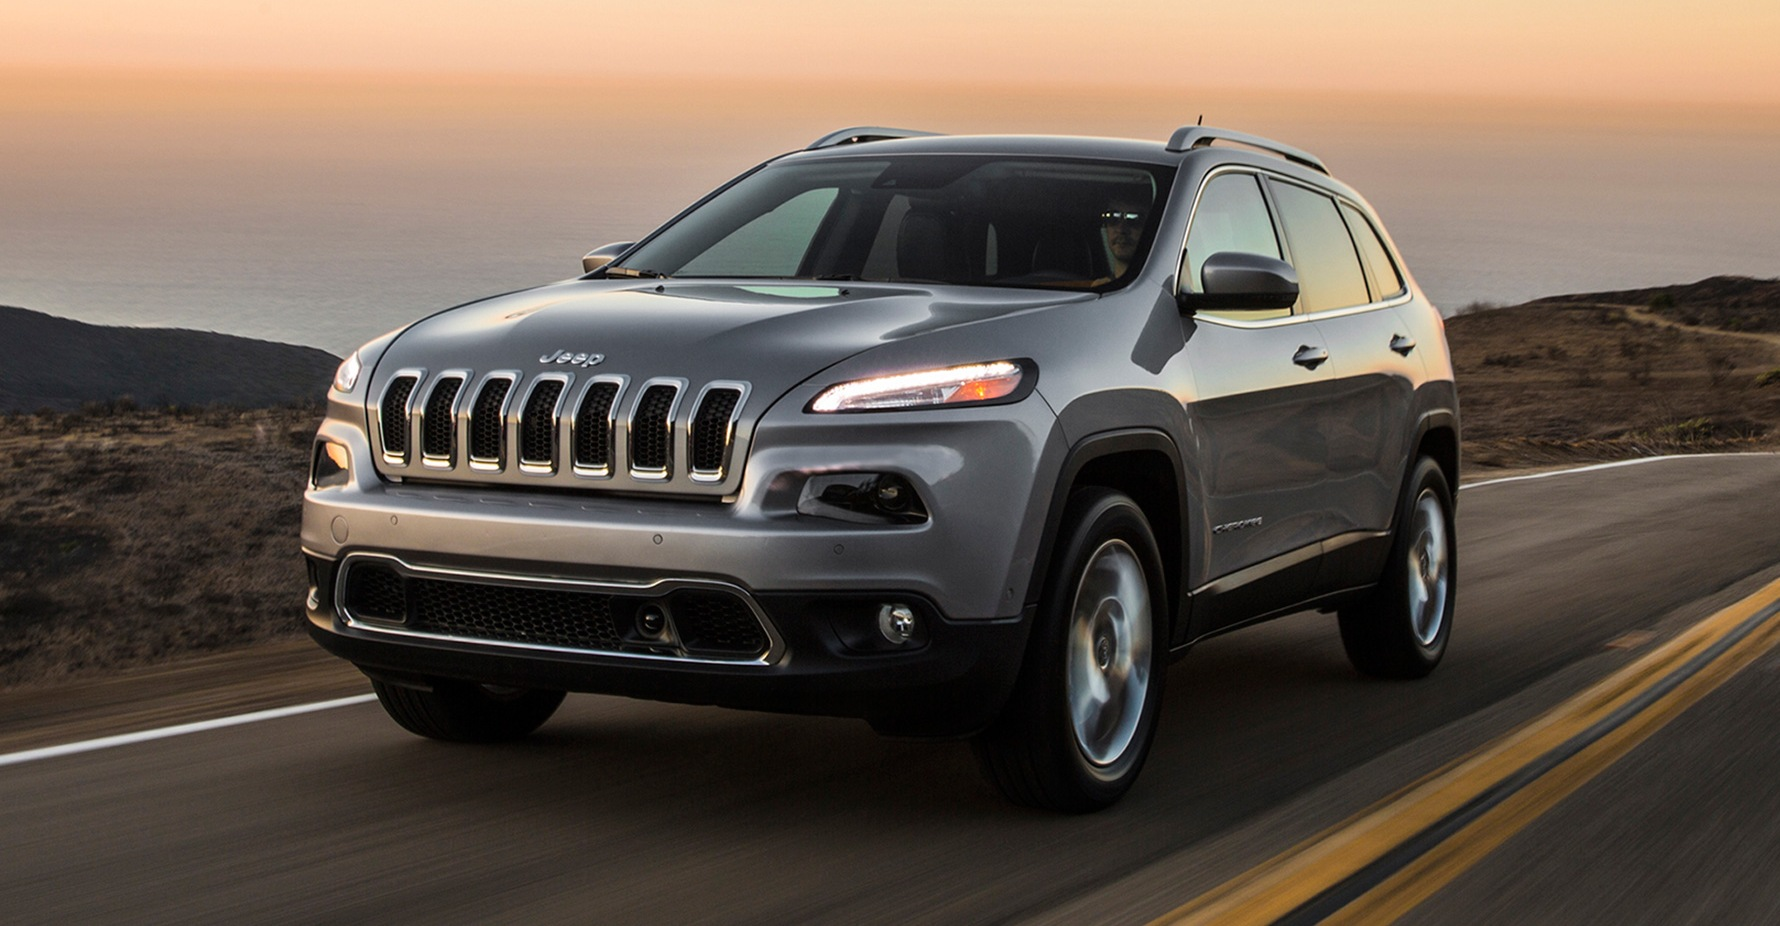 2017-Jeep-Cherokee-Limited-front-three-quarter-in-motion-04.jpg